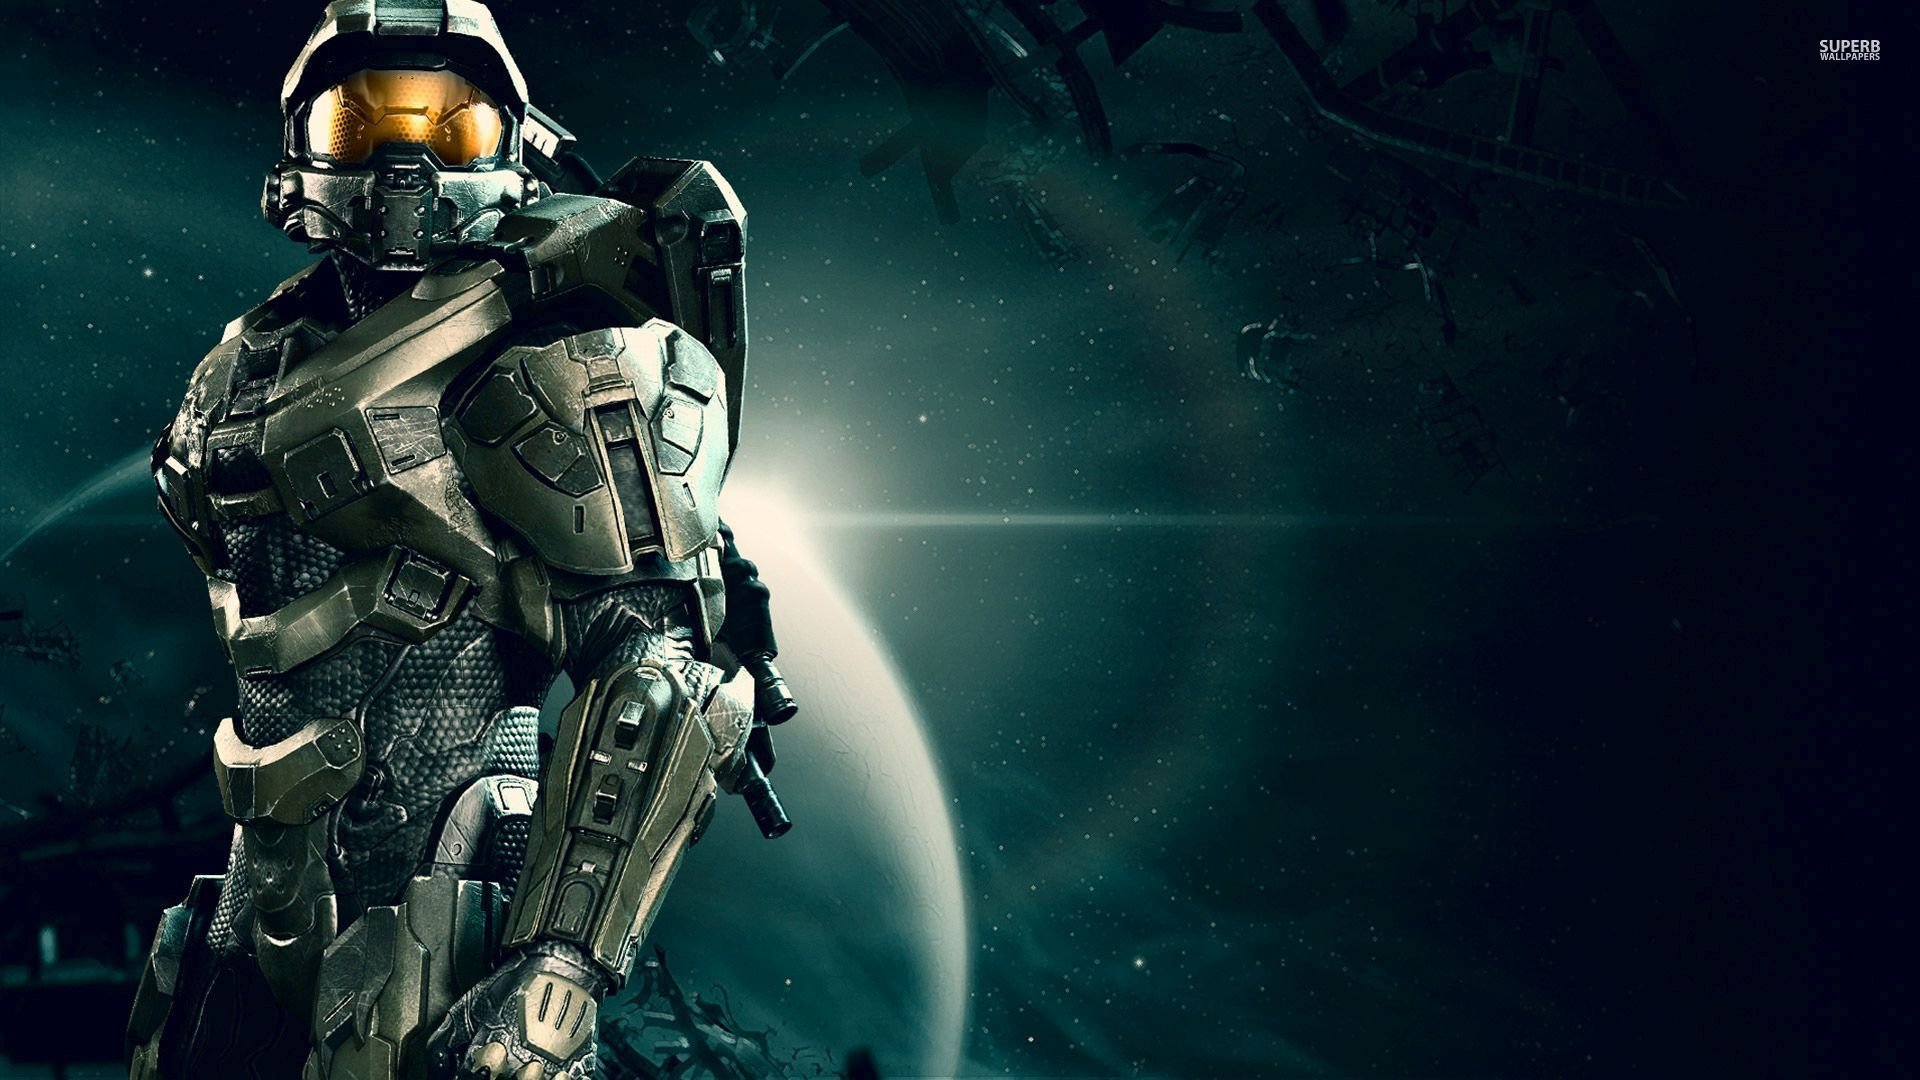 Master Chief Wallpaper 1920x1080 52541 Wallpaper In 2019